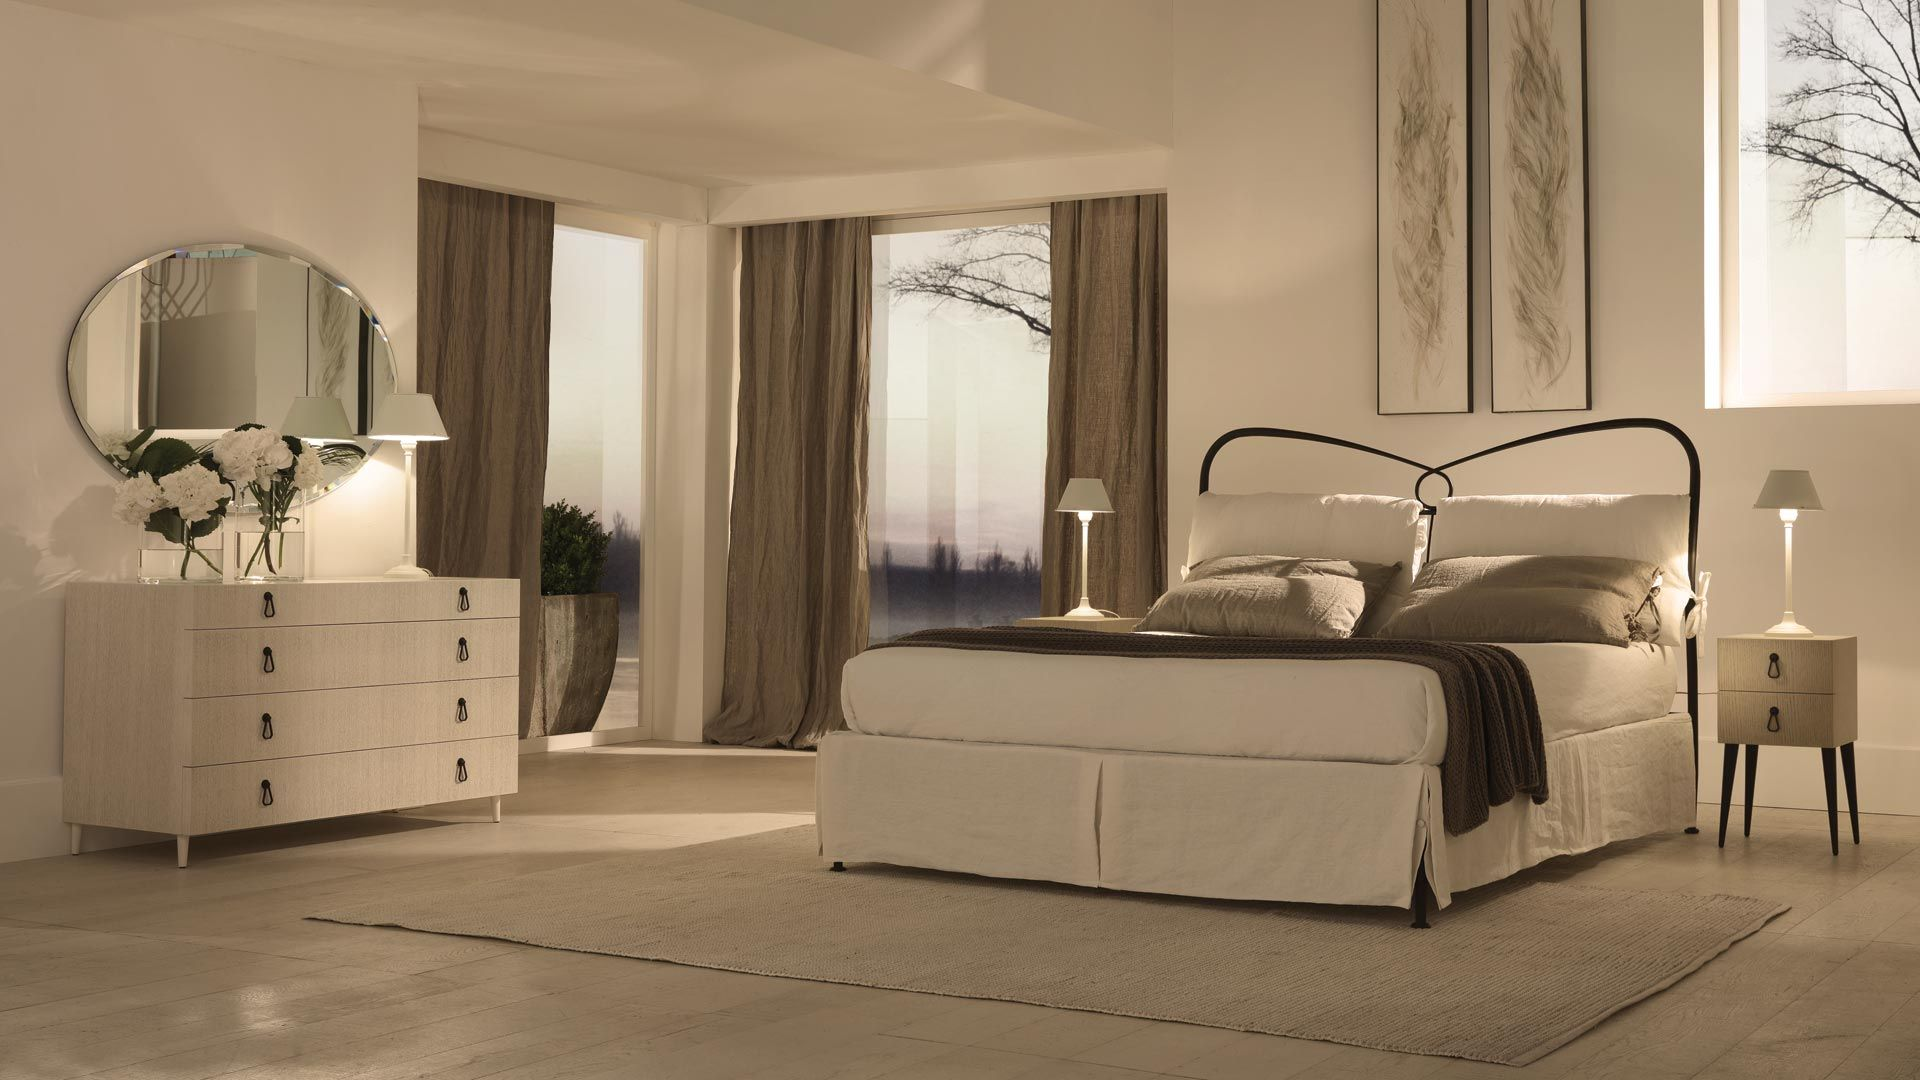 St. Tropez - Padded Beds - Cantori | Padded Beds | Pinterest ...